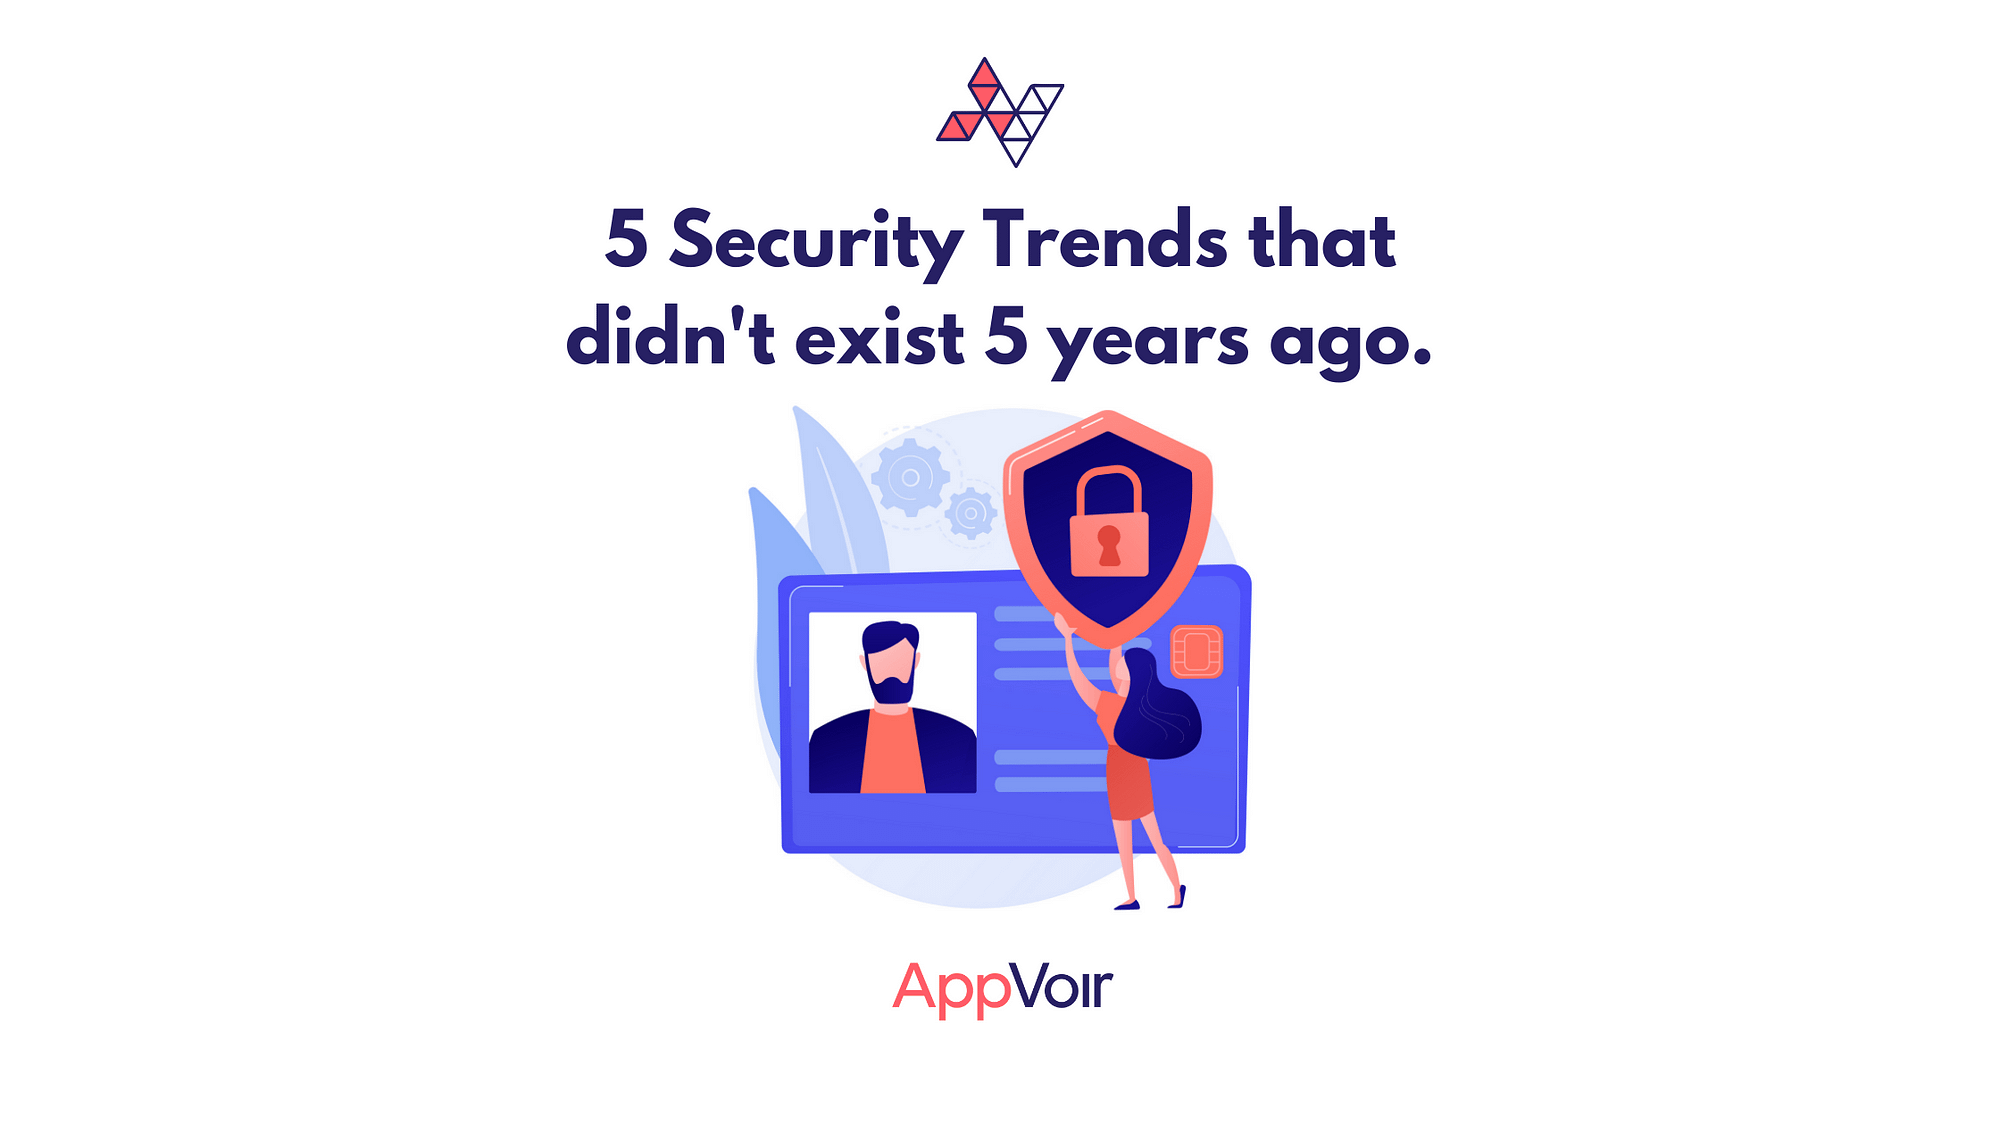 Key Takeaways from 5 Latest Security Trends.